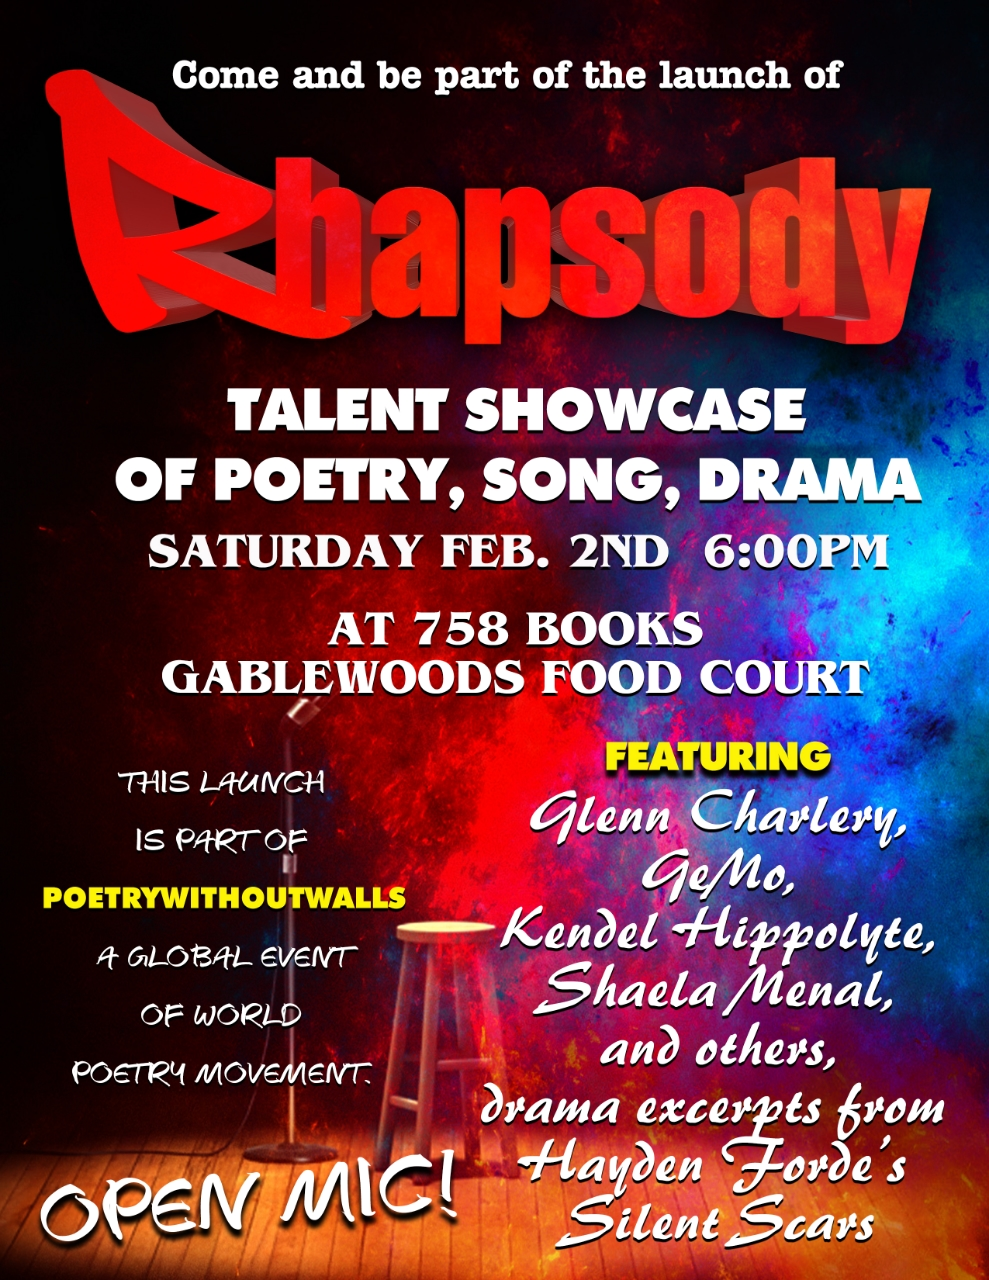 rhapsody talent showcase poetry dance song what to do in st lucia: Kendel Hippolyte, Glenn Charlery, haela Mena, GeMo and others, excerpts from Hayden Forde's Silent Scar